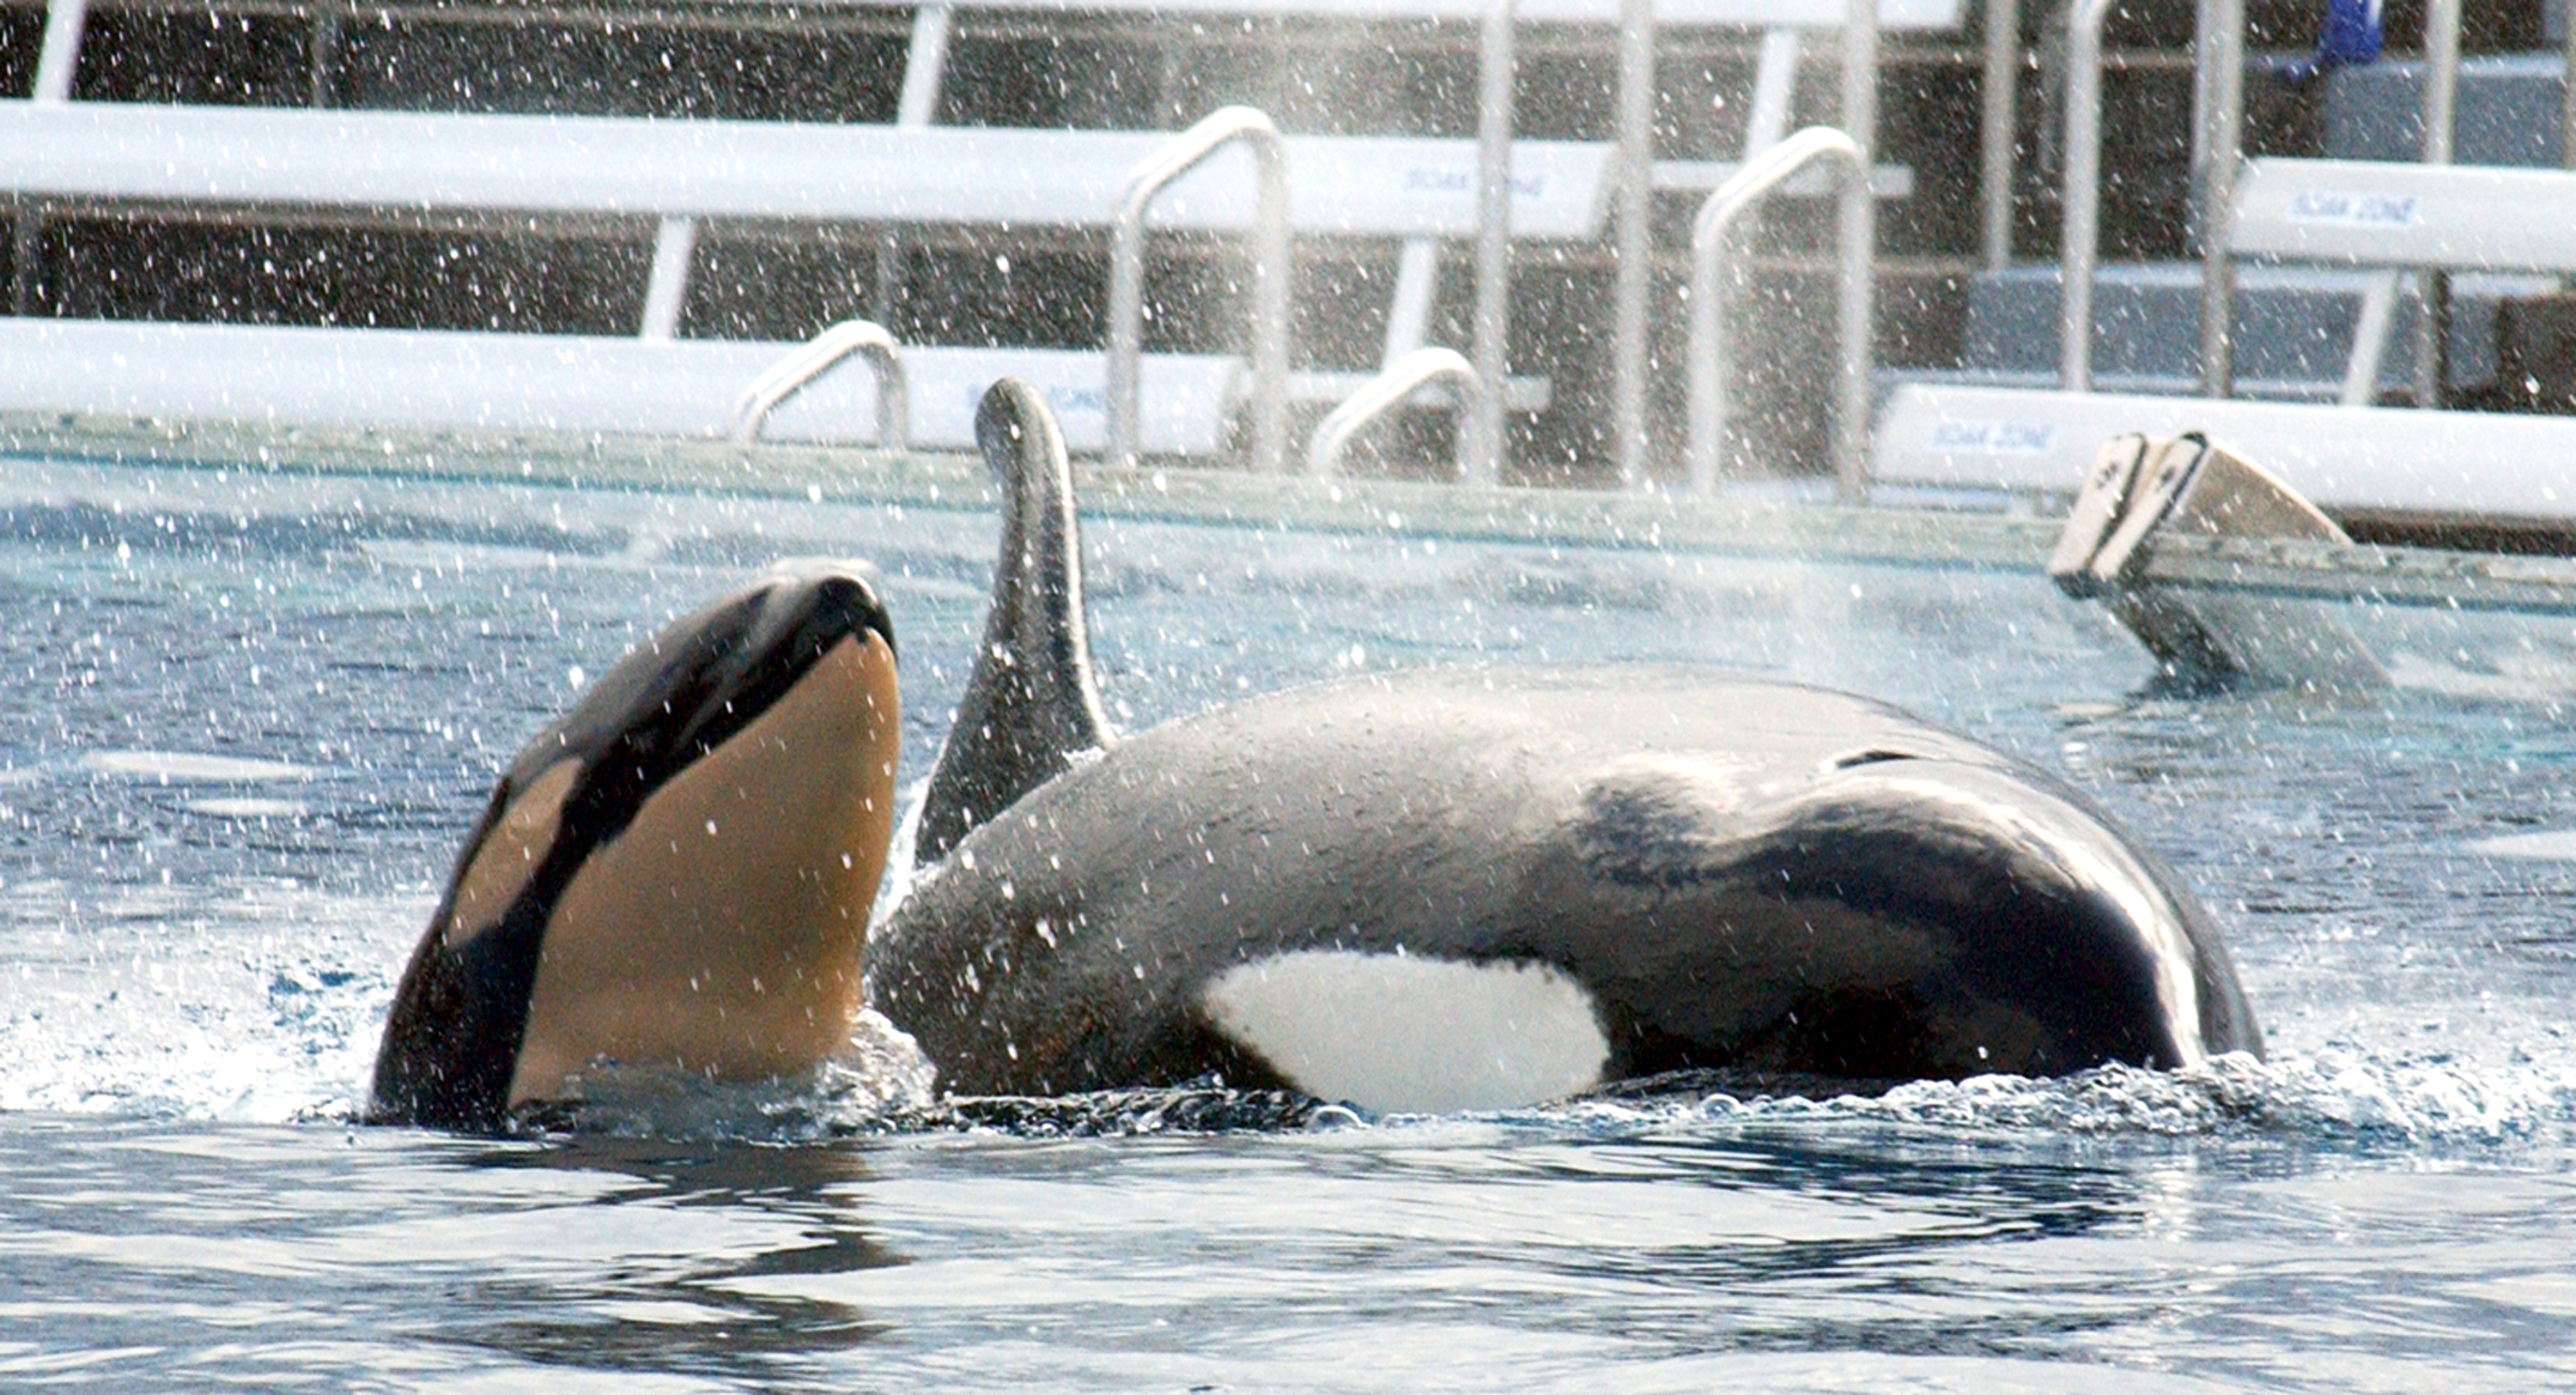 A newborn baby killer whale swims with its mother on Dec. 21, 2004, at Shamu Stadium in SeaWorld San Diego